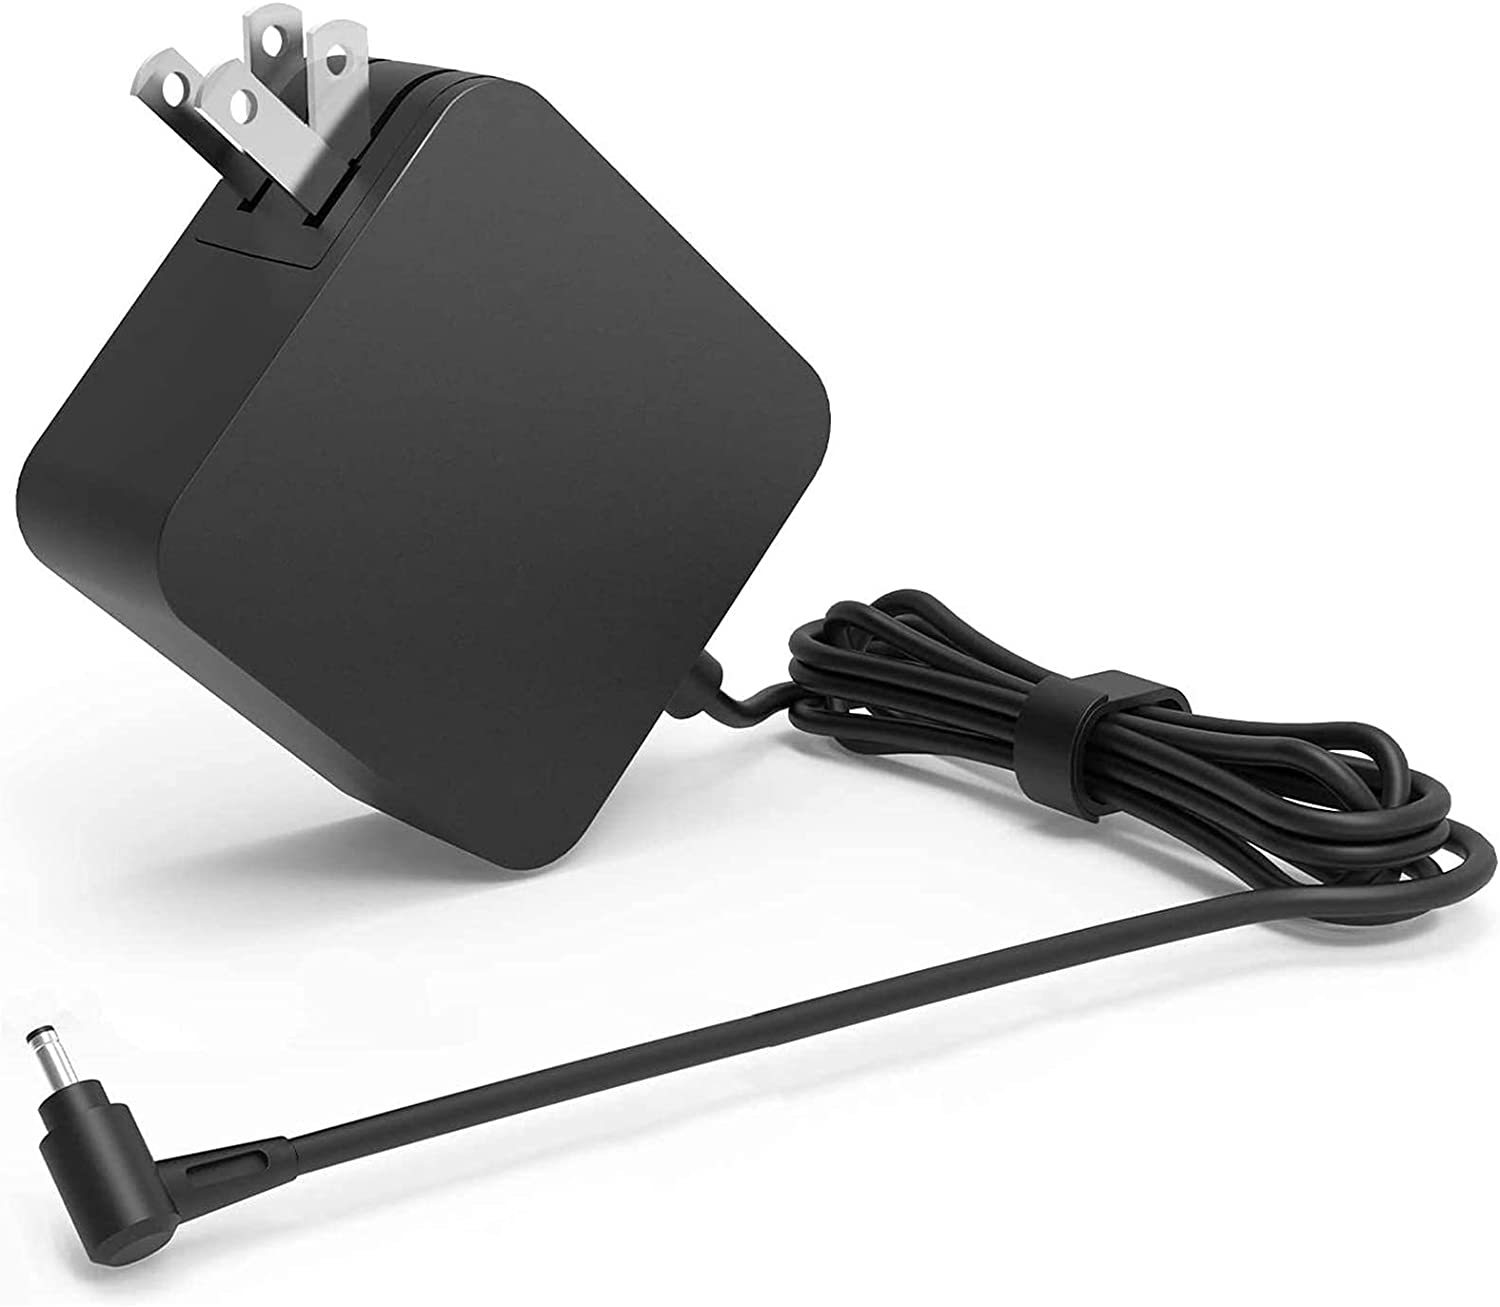 65W 45W Laptop Charger Fit for Lenovo IdeaPad 1 3 5 ADL45WCC 330 110 510 310 320 L340 S340 S145, Flex 3 4 5 14 15 ADLX65CCGU2A PA-1450-55LL 1470 1130, Yoga 710 11 14 15, for Lenovo AC Power Adapter